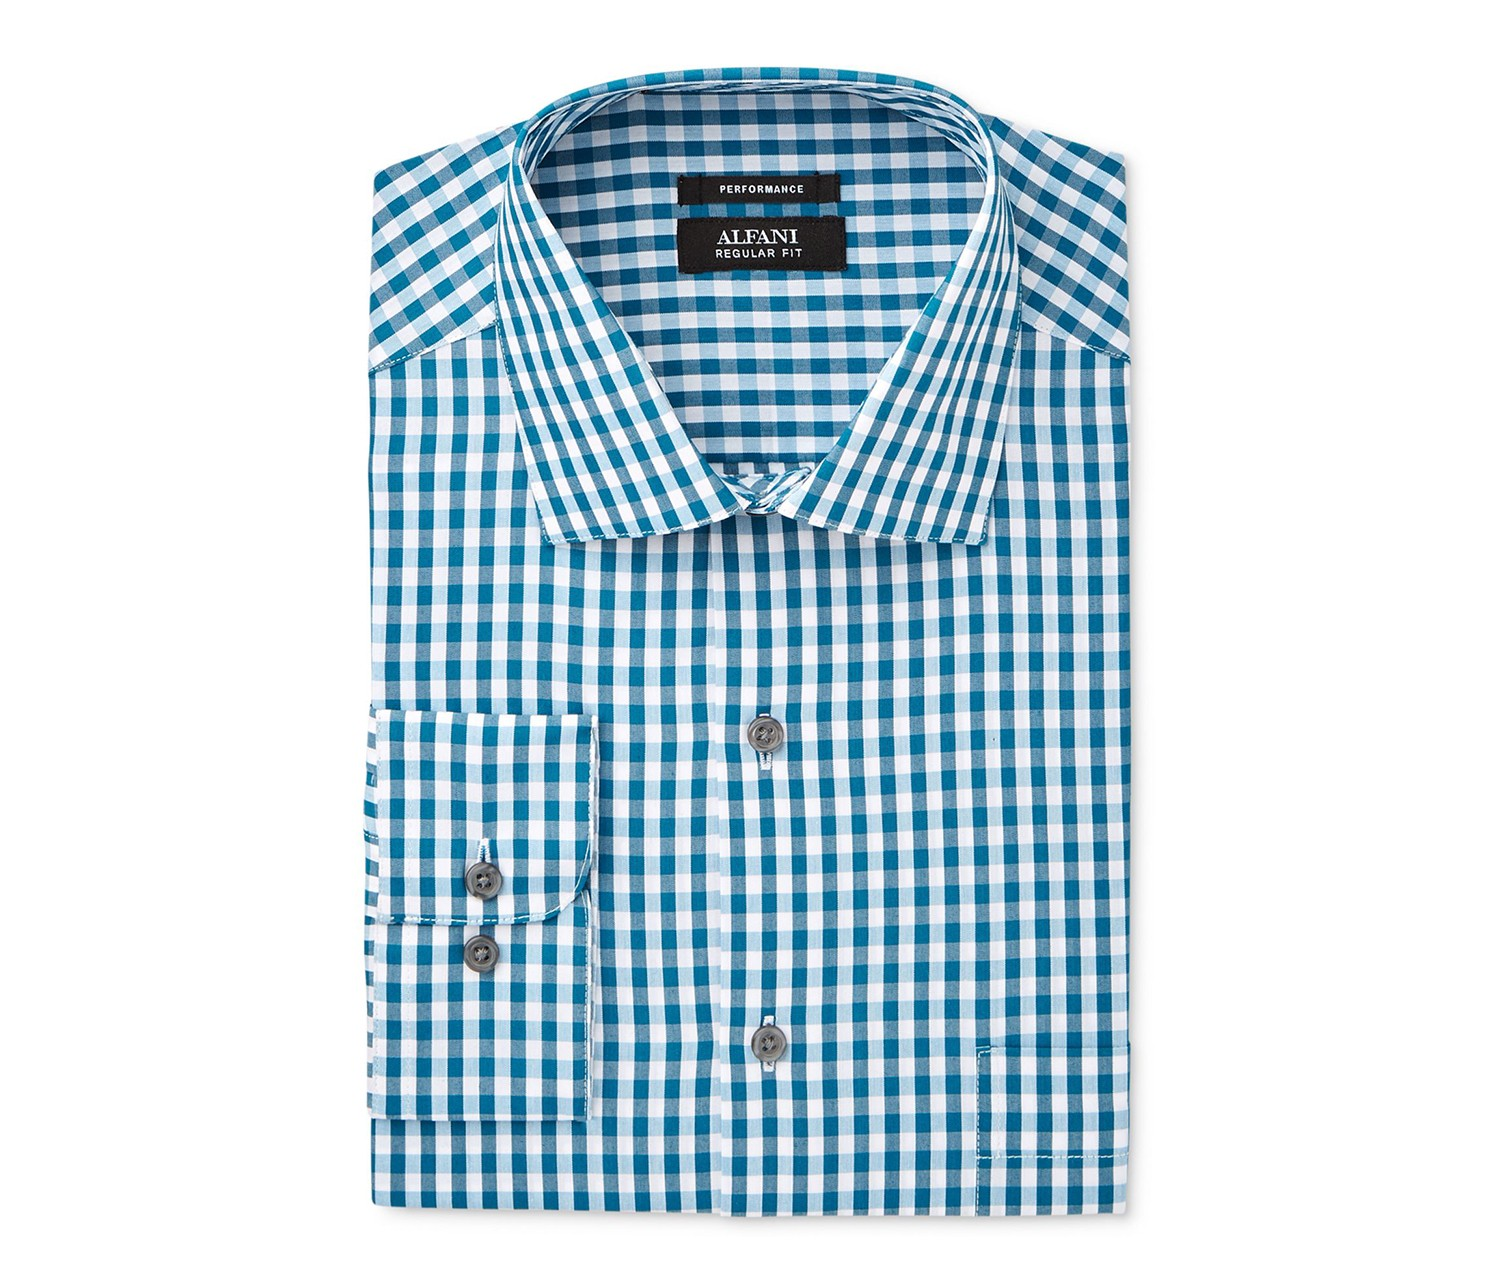 313a7b96f77c Shop Alfani Alfani Mens Check Regular Fit Performance Shirt, Teal ...